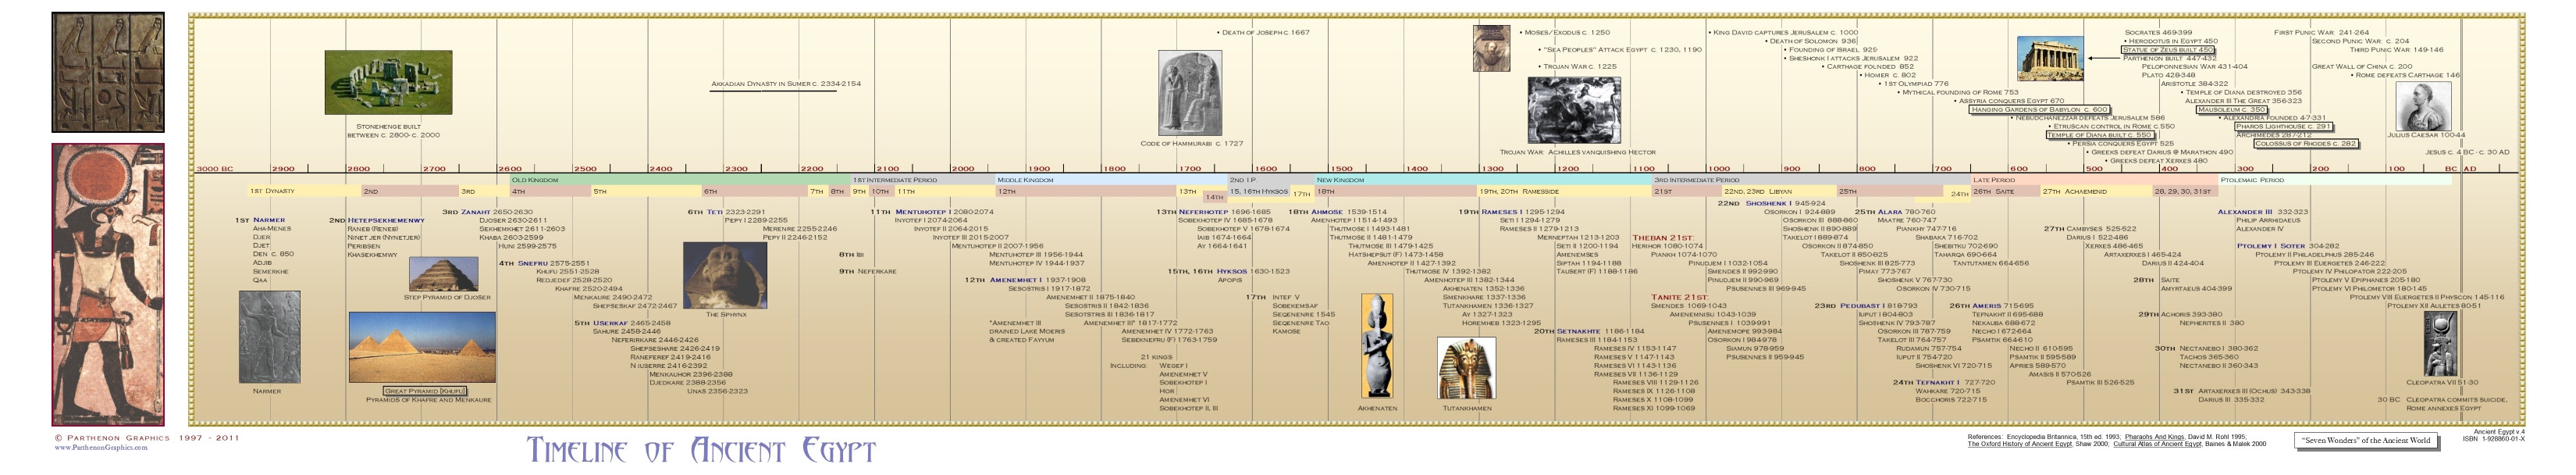 Parthenon graphics history timeline posters timeline of ancient egypt altavistaventures Images